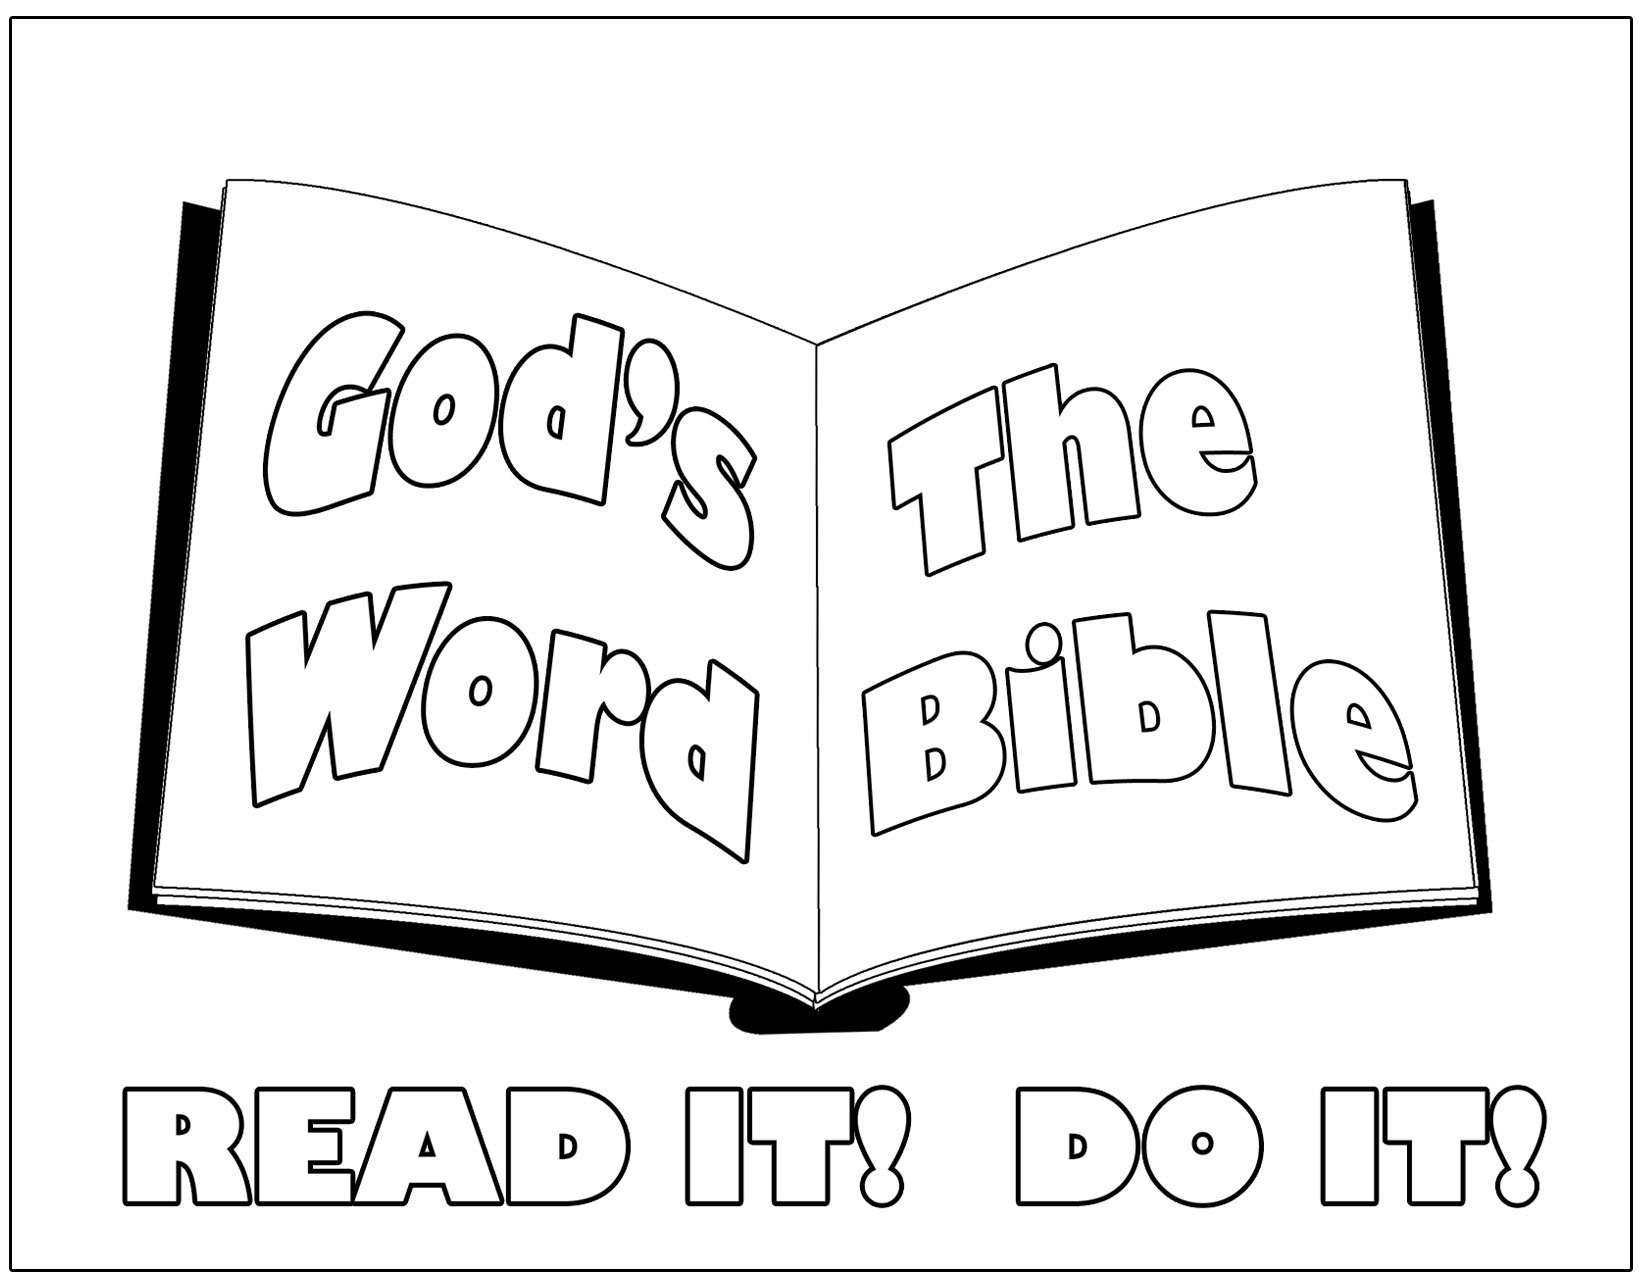 Coloring Pages Free Christian Coloring Pages free printable bible coloring pages for kids pages